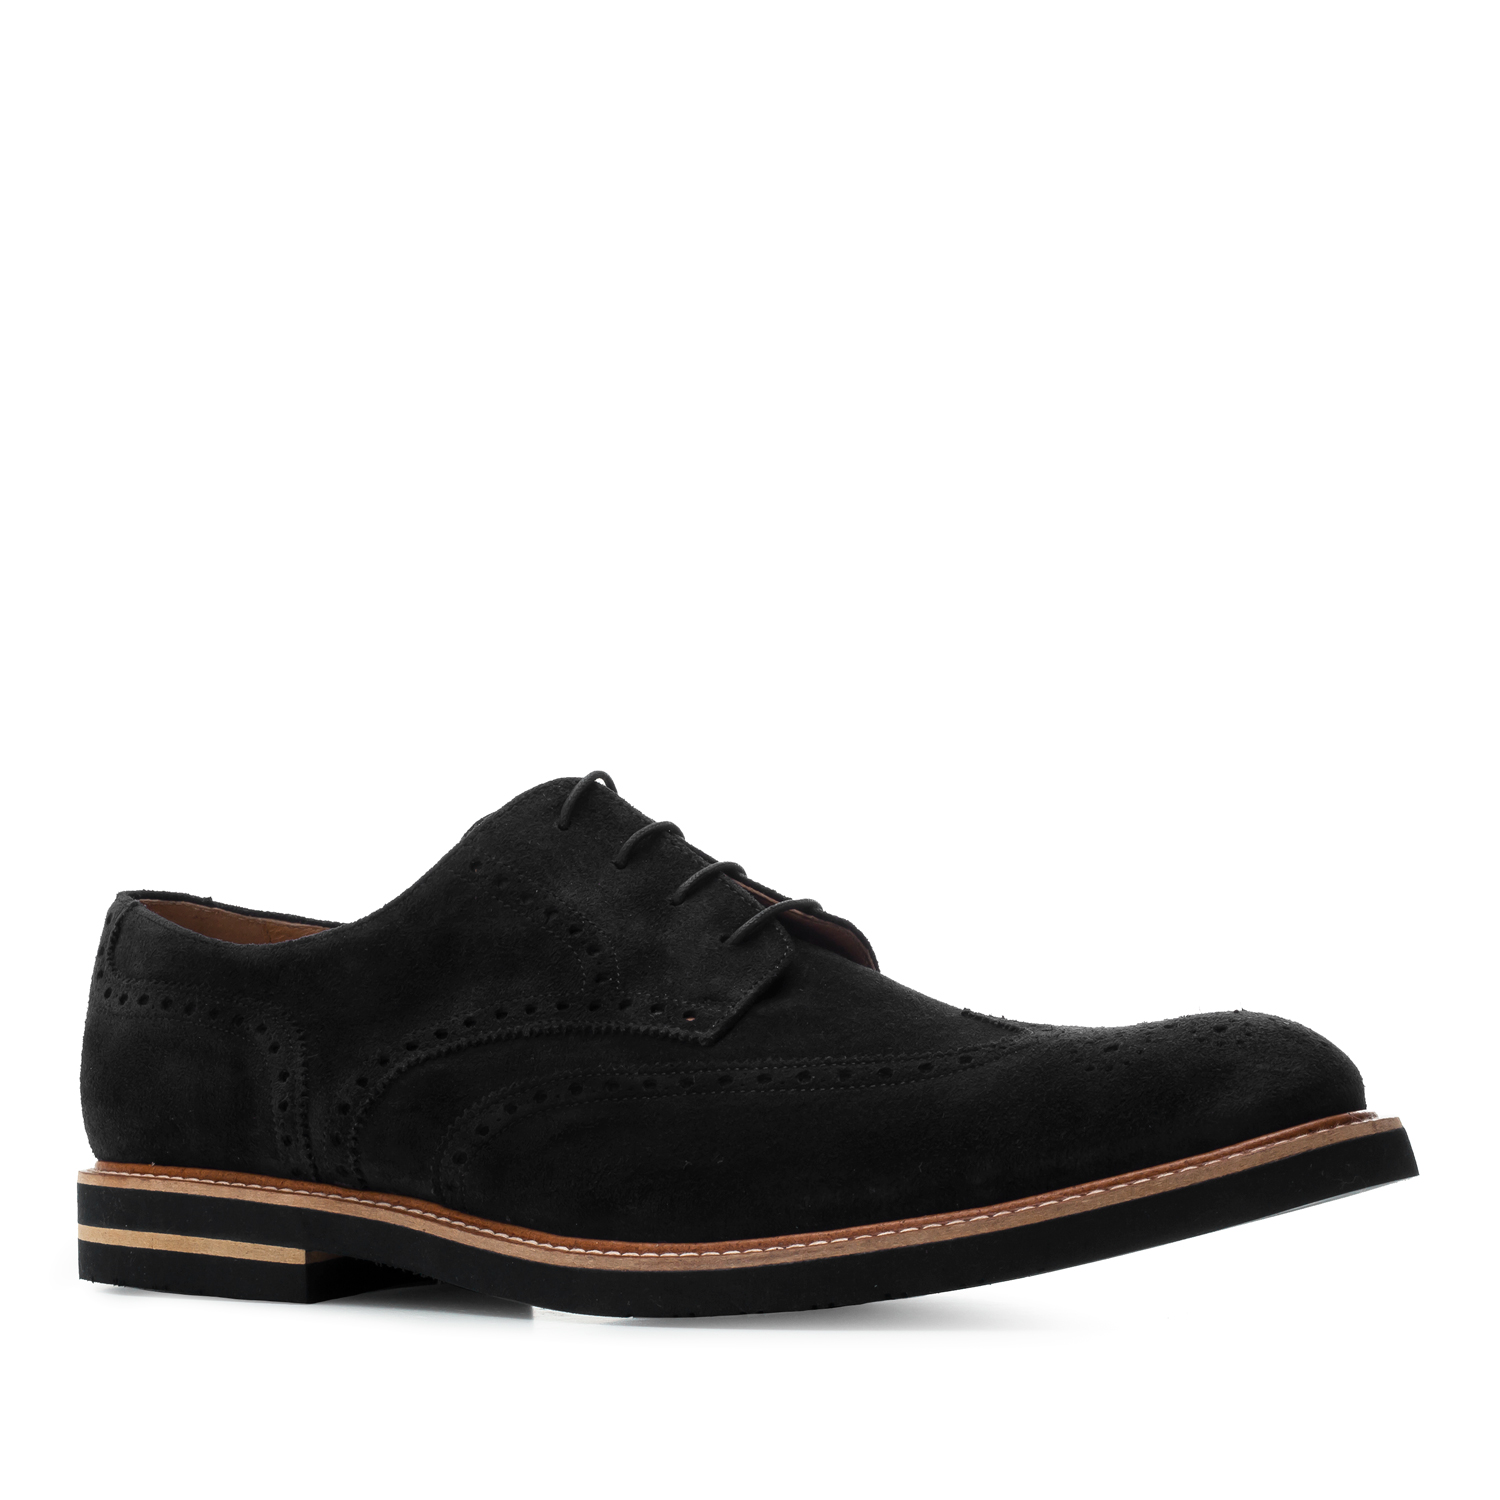 Oxford Shoes in Black genuine Split Leather